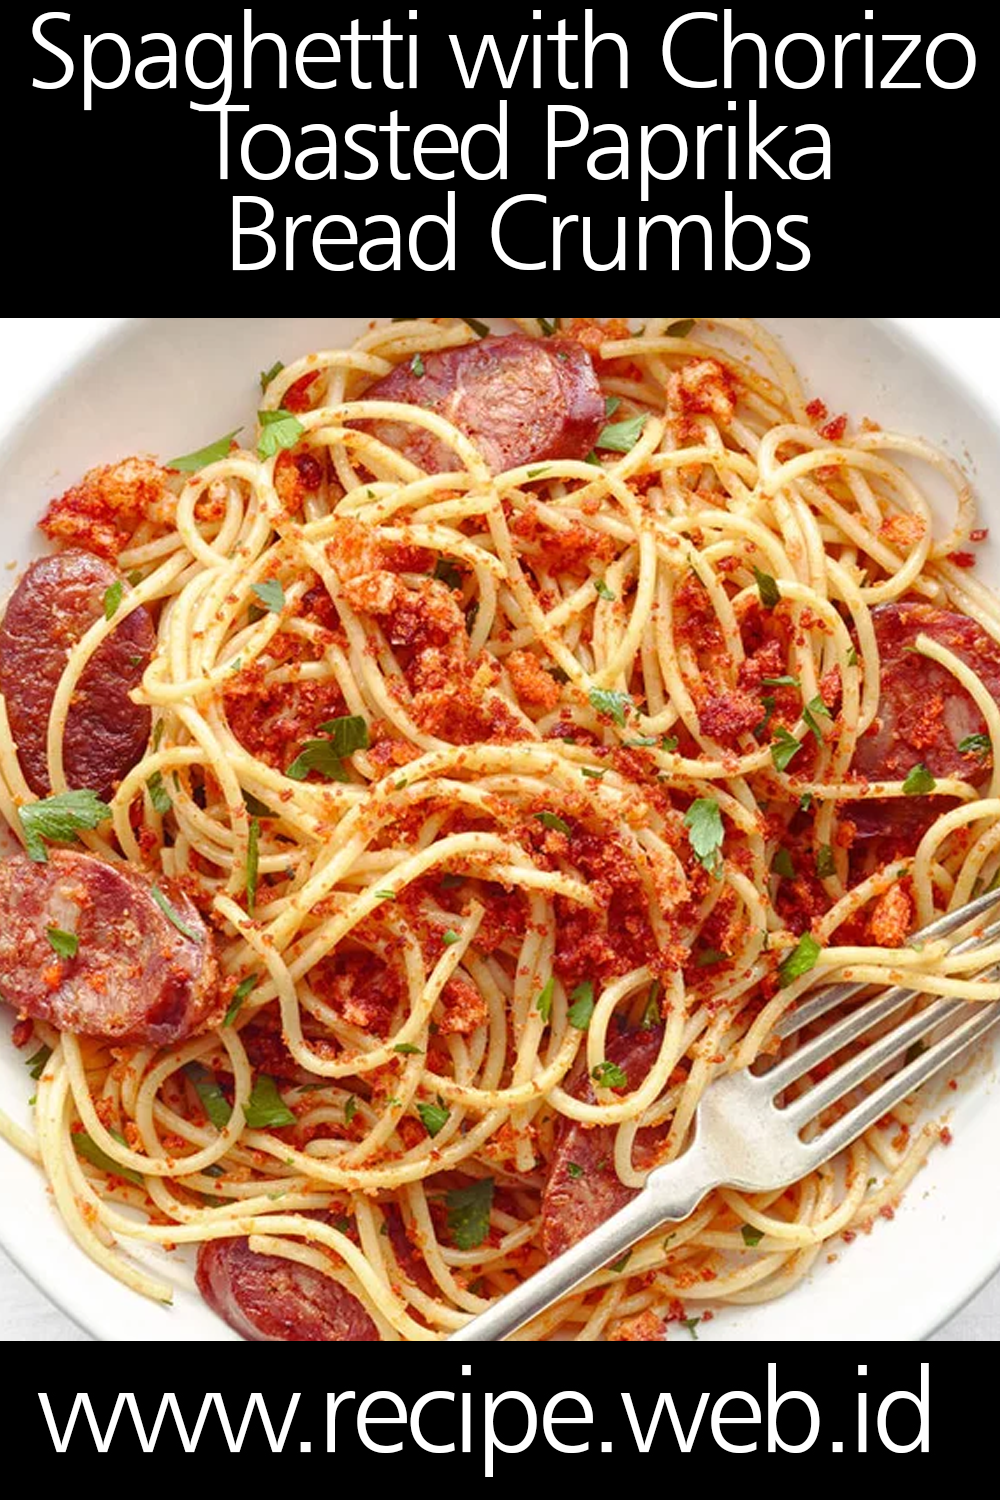 Spaghetti with Chorizo and Toasted Paprika Bread Crumbs